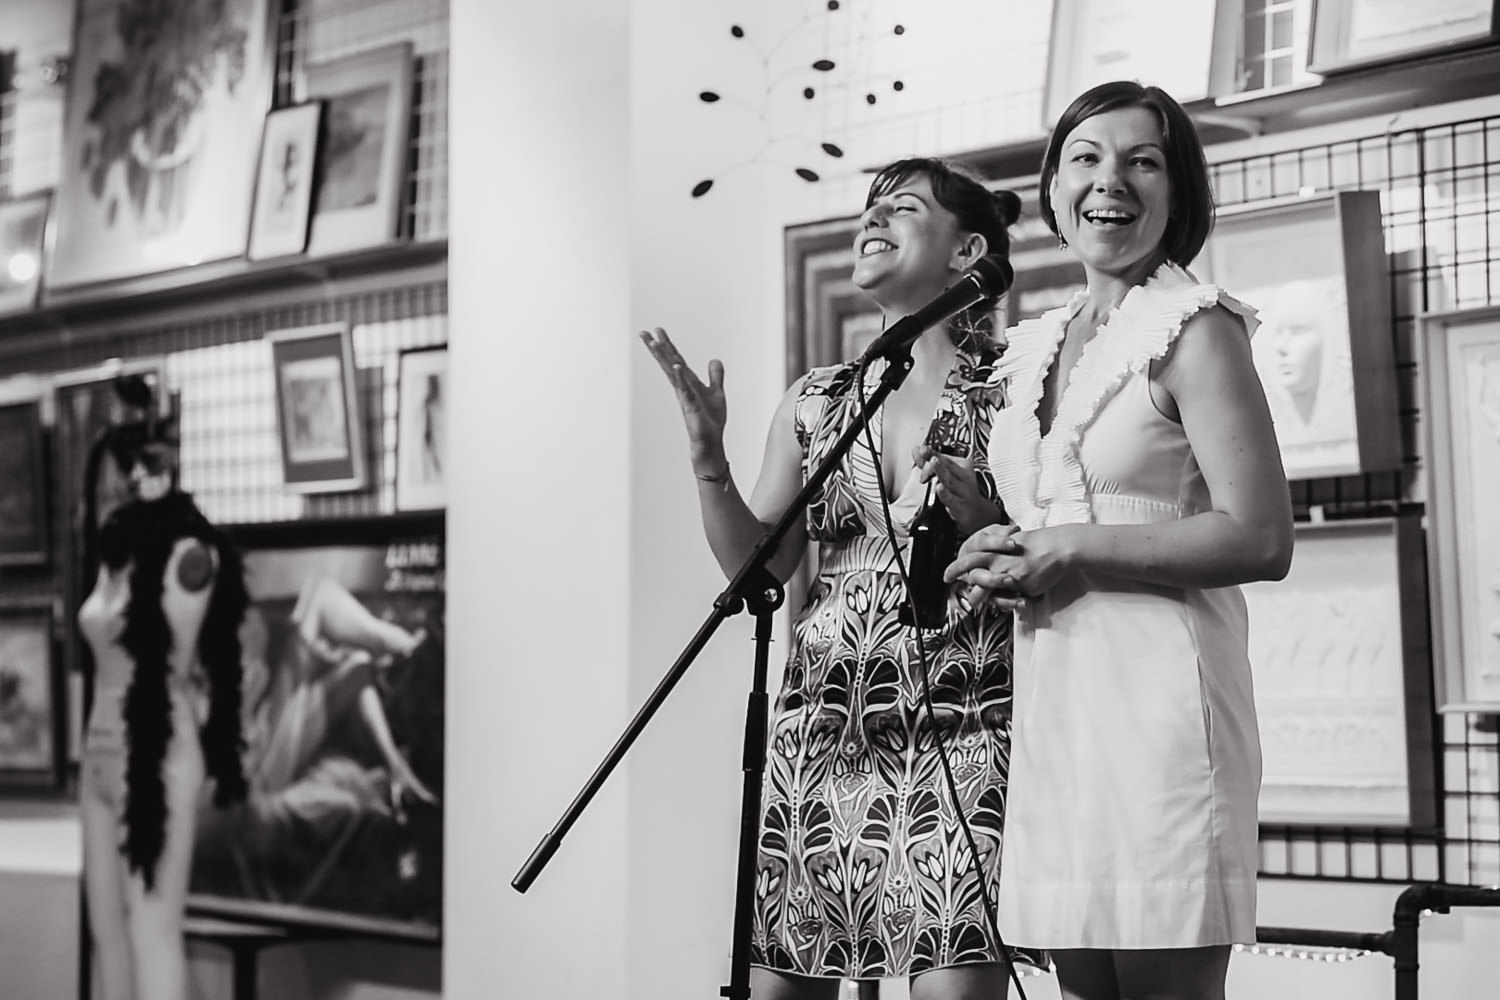 Sarah Rabenou and Zsuzsi Tass, founders of the Project Life Center.